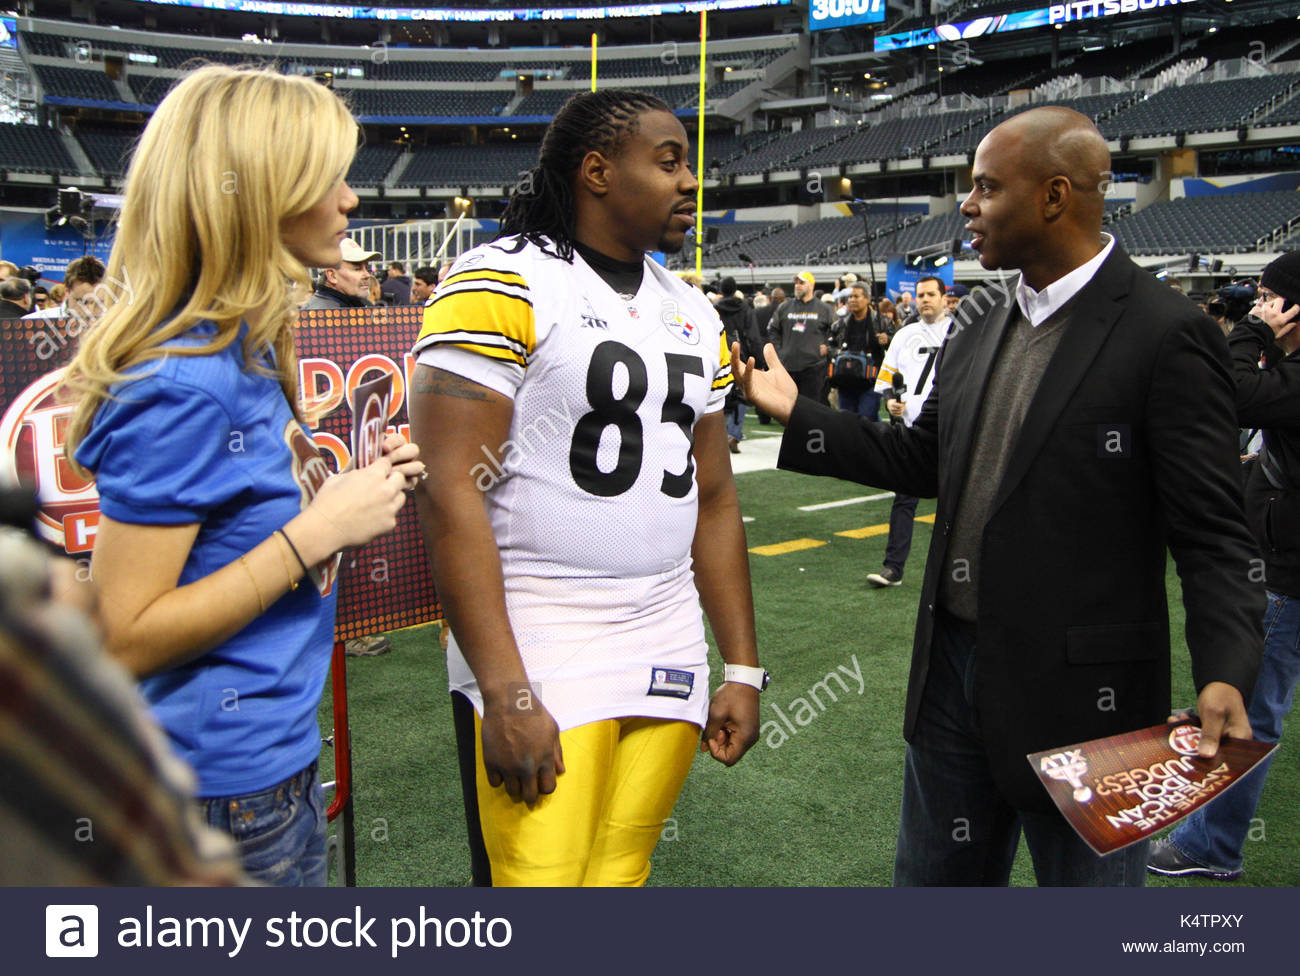 Pittsburgh Steelers tight end David Johnson 85 Kevin Frazier